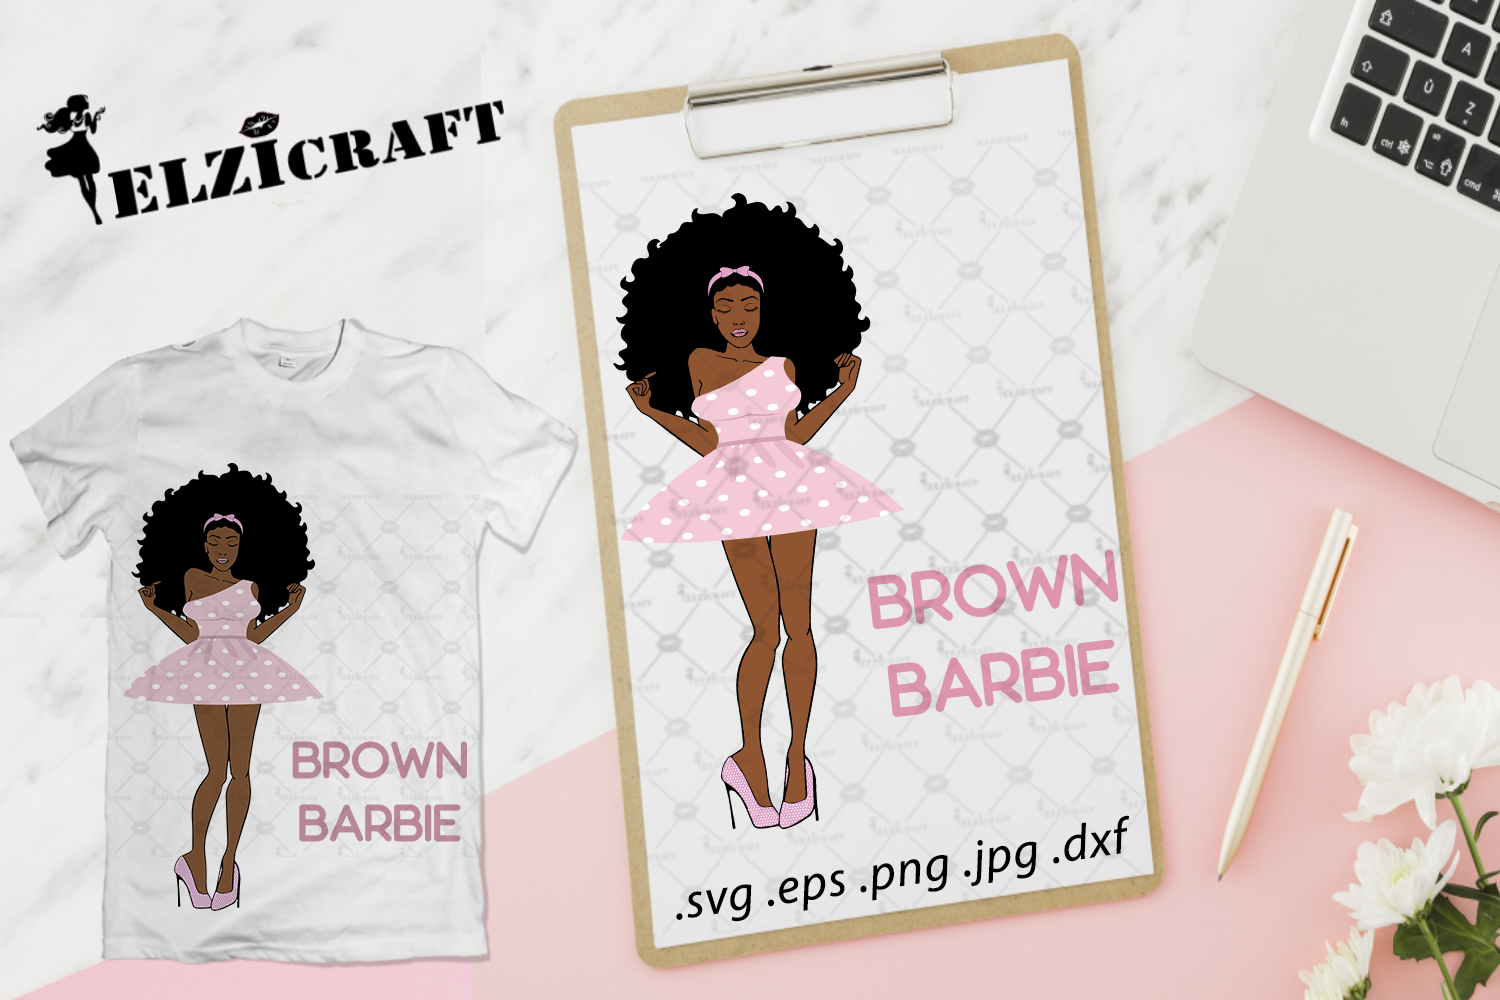 Download Free Afro Woman Brown Barbie Design Graphic By Elzicraft Creative for Cricut Explore, Silhouette and other cutting machines.